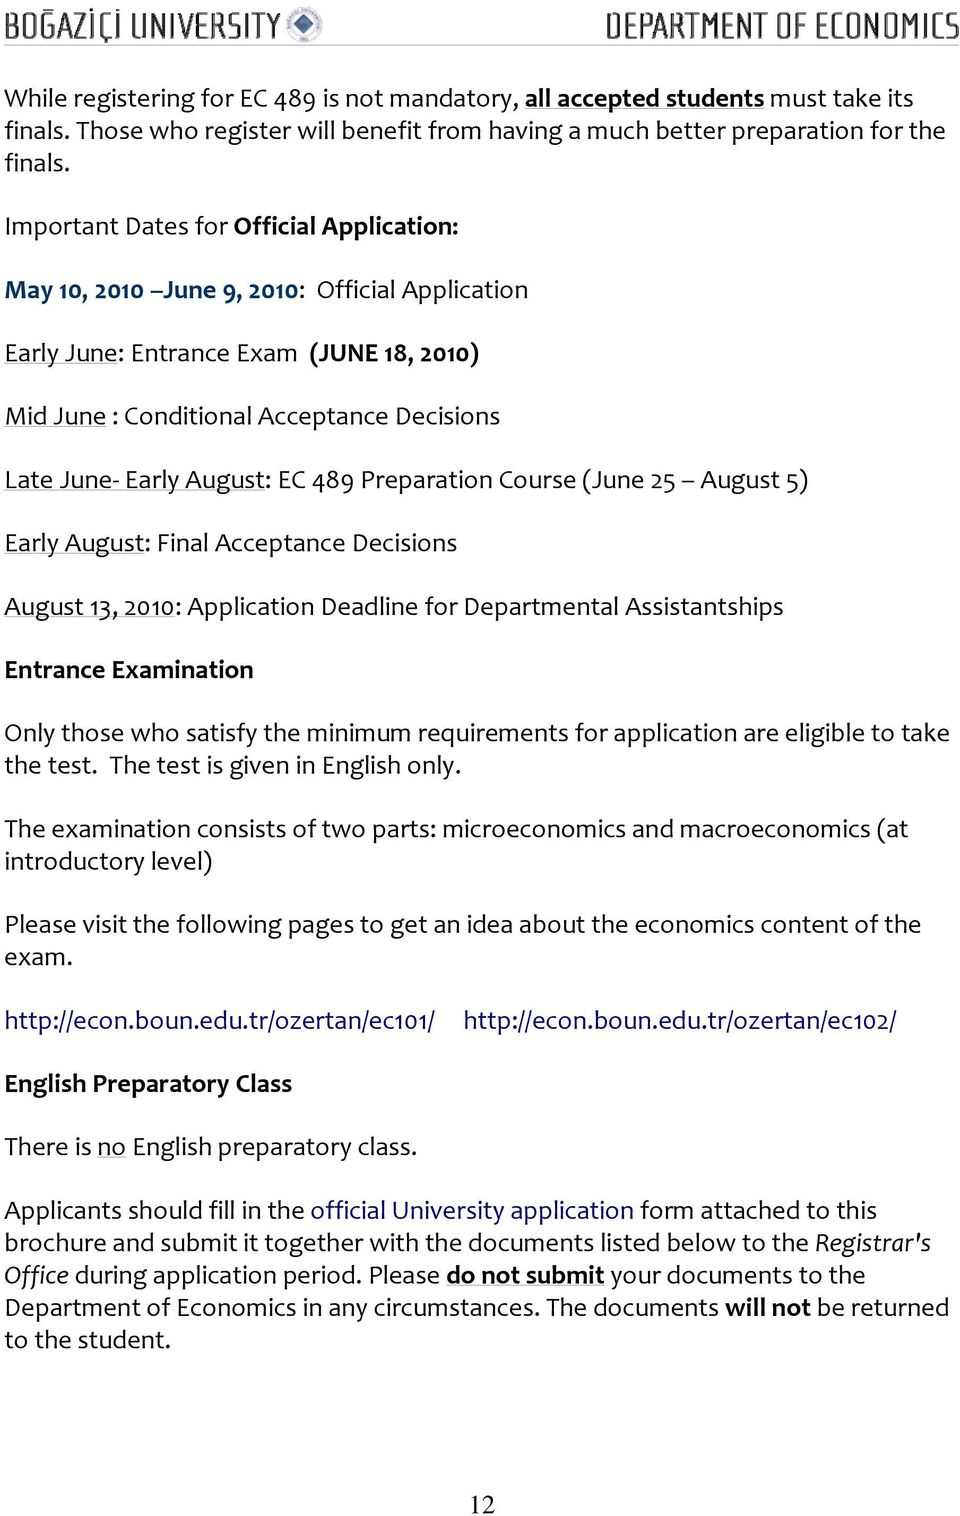 EC 489 Preparation Course (June 25 August 5) Early August: Final Acceptance Decisions August 13, 2010: Application Deadline for Departmental Assistantships Entrance Examination Only those who satisfy